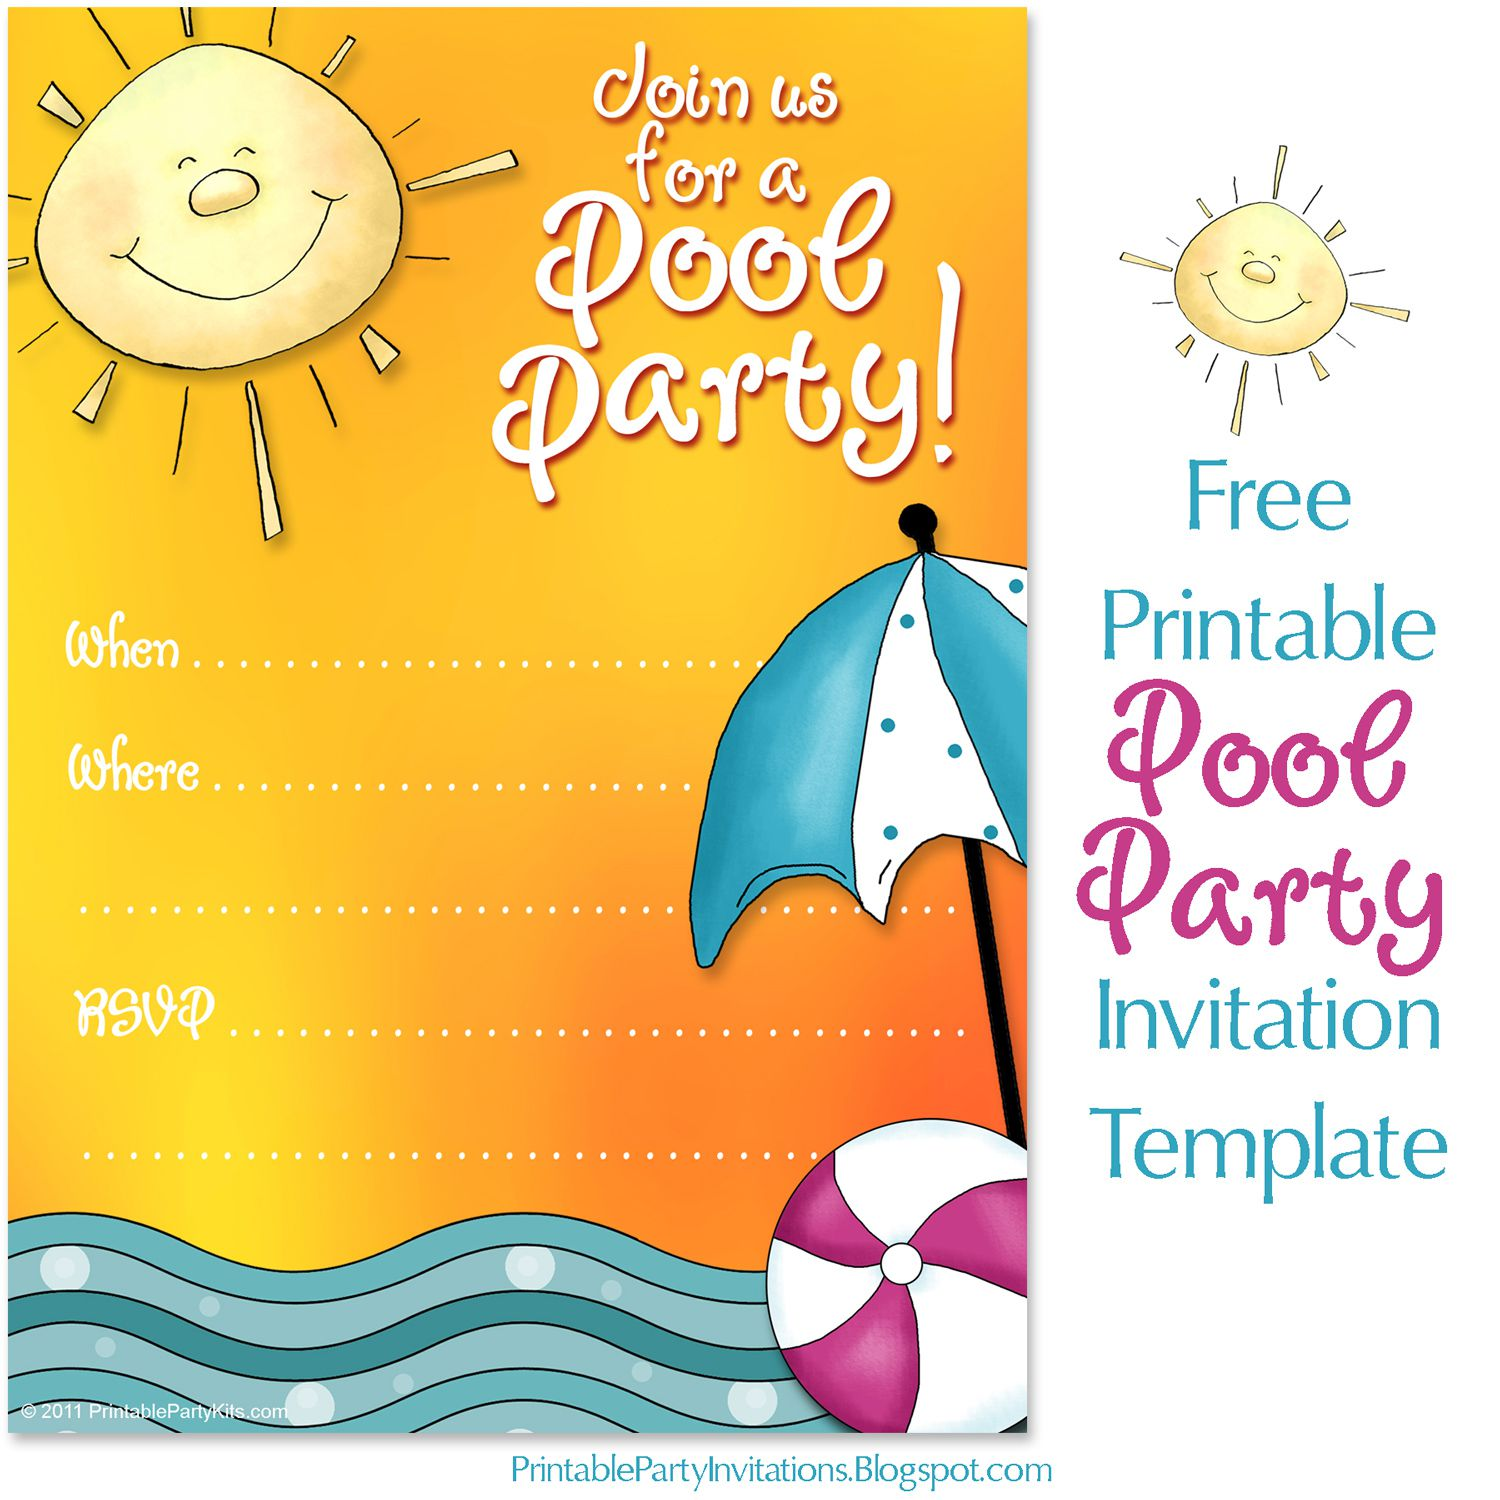 008 Unforgettable Free Pool Party Invitation Template Printable Idea  Card SummerFull